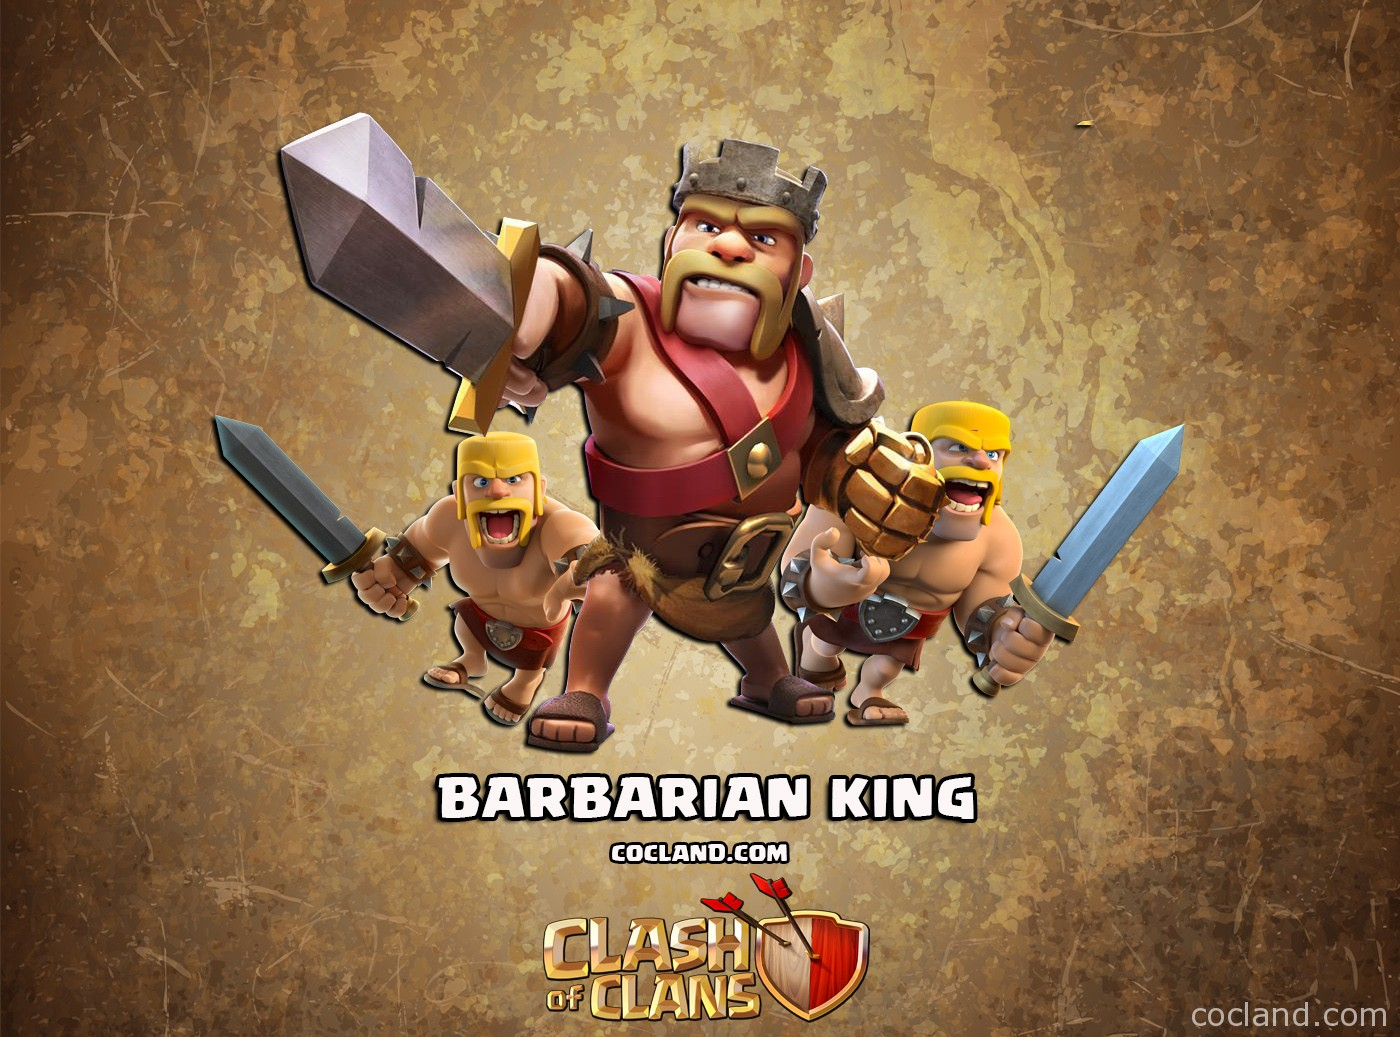 Barbarian King Clash Of Clans CoC Pictures HD Wallpaper 2016 1400x1037